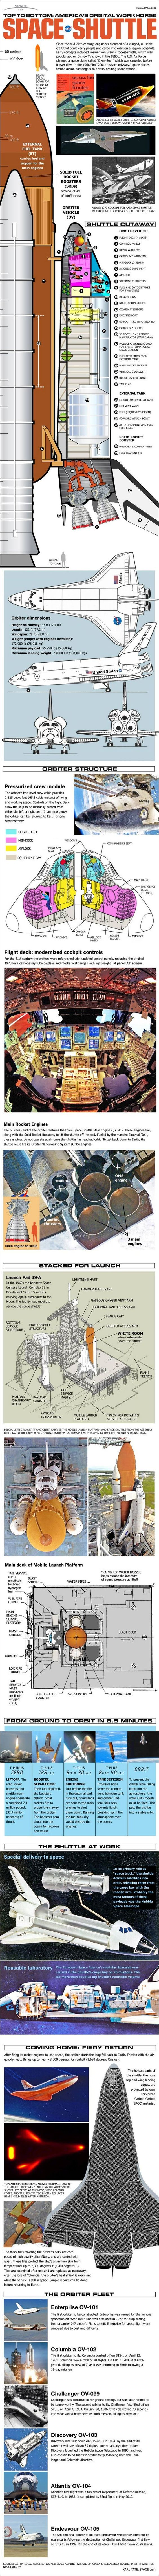 NASA Space Shuttle Launch..Great info..It's still hard to understand or believe that after $980 Billion or now more than 1Trillion Dollars invested in NASA's budget we now have to hitch a ride into space with the fine folks from Russia.